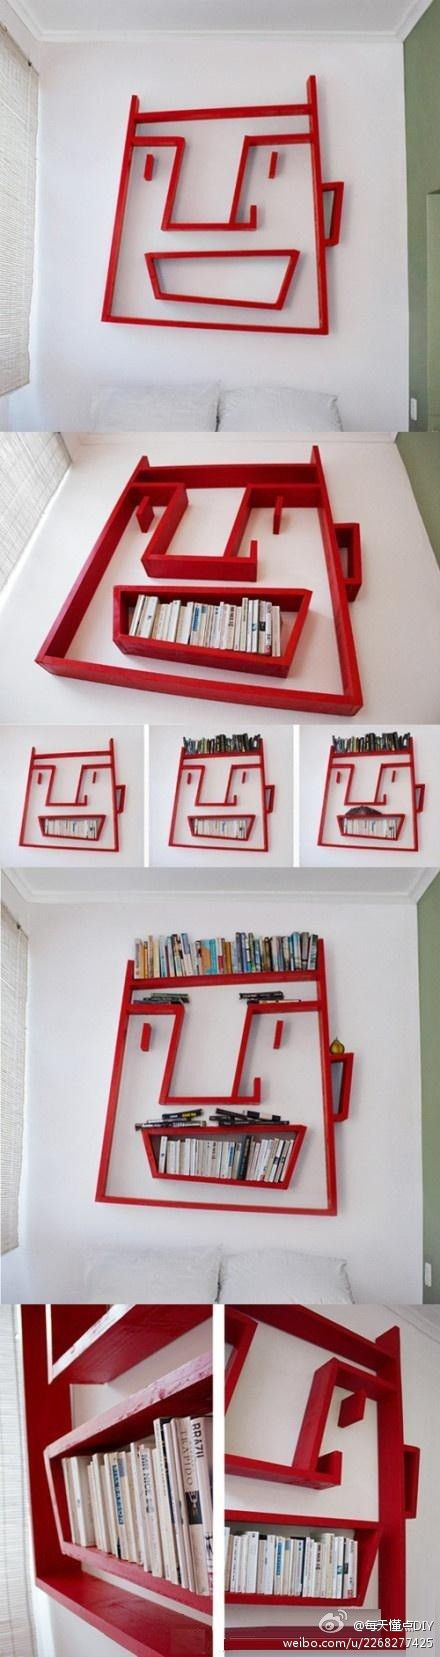 Useful because you can put your books just about anywhere. Design's not very versatile, though.